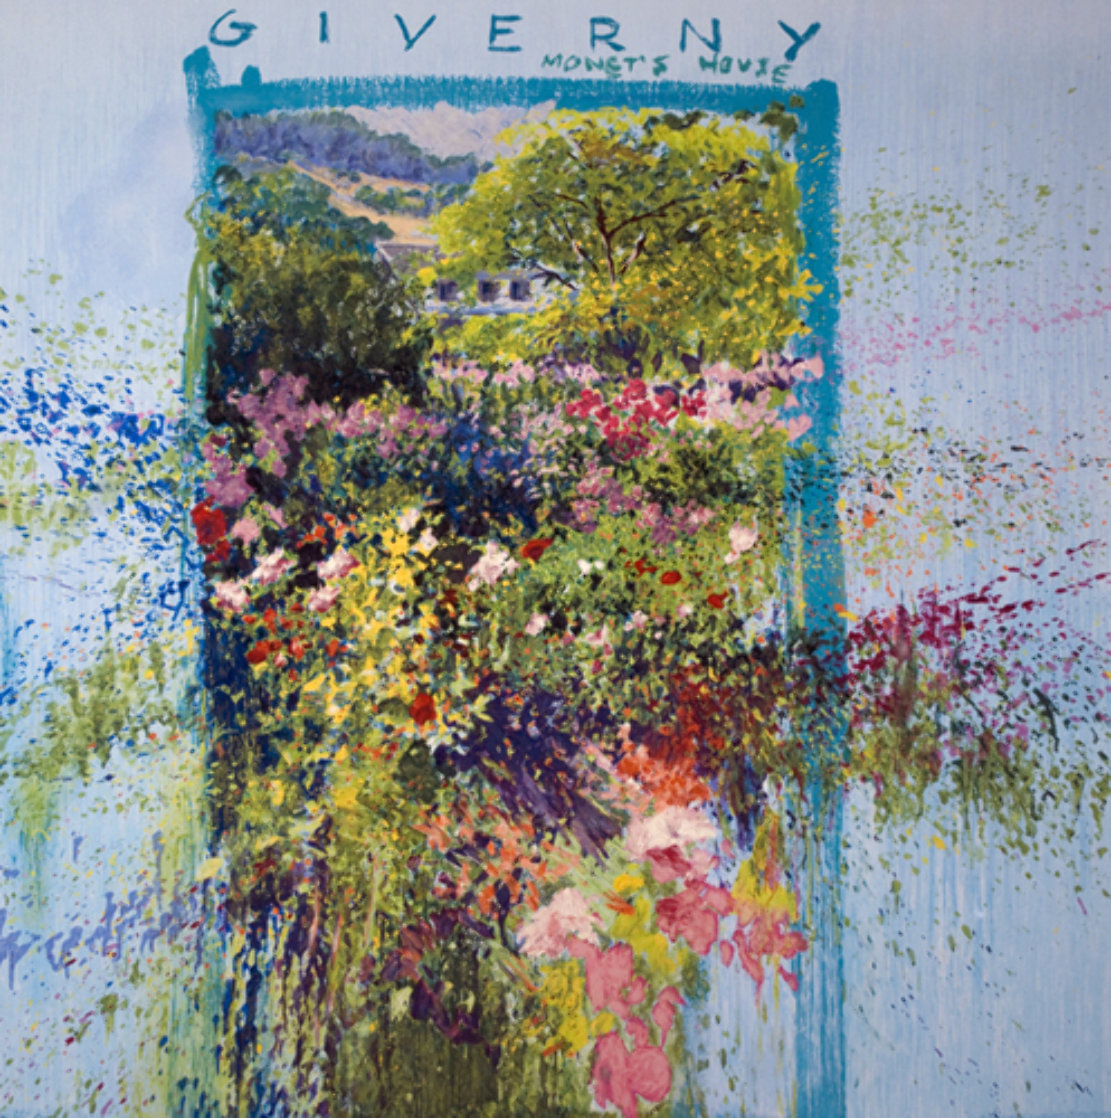 Fleurs De Giverny Limited Edition Print by J. Torrents Llado